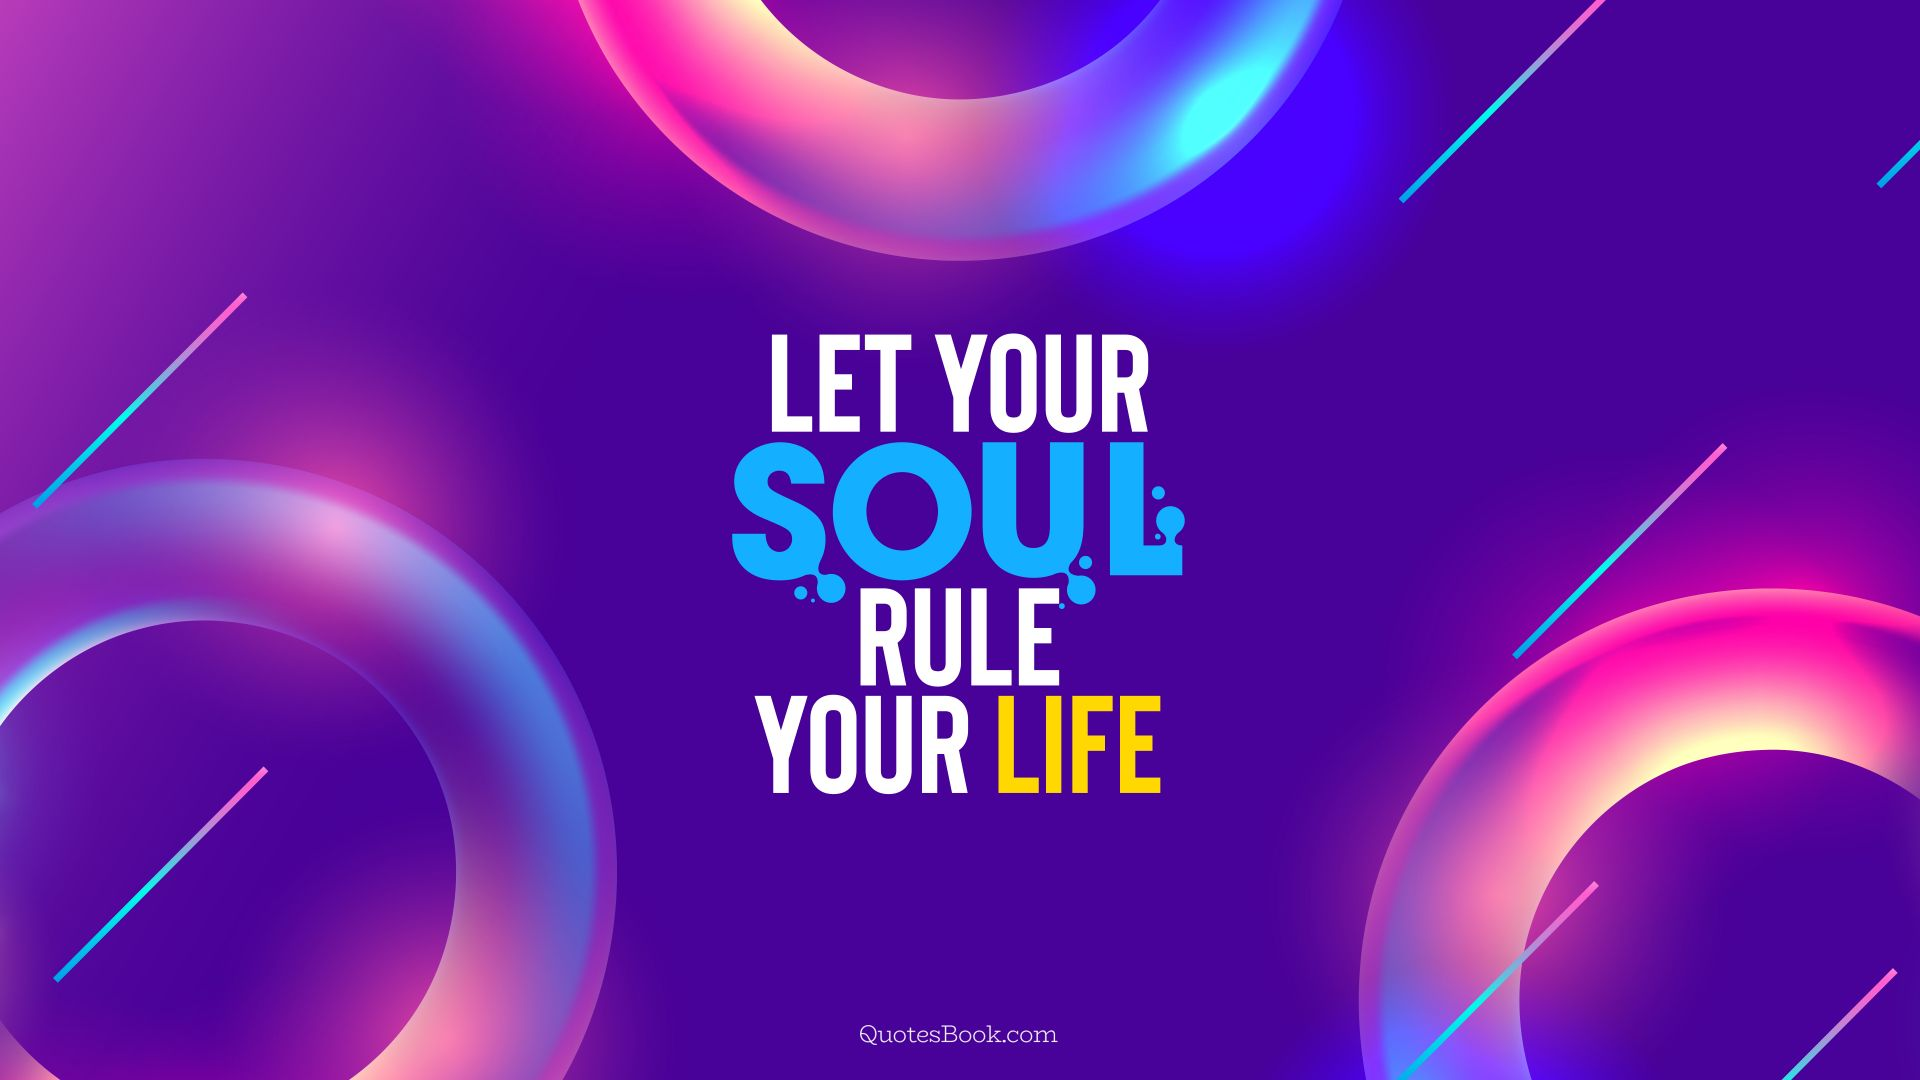 """Let your soul rule your life"" – QuotesBook [7680×4320]"